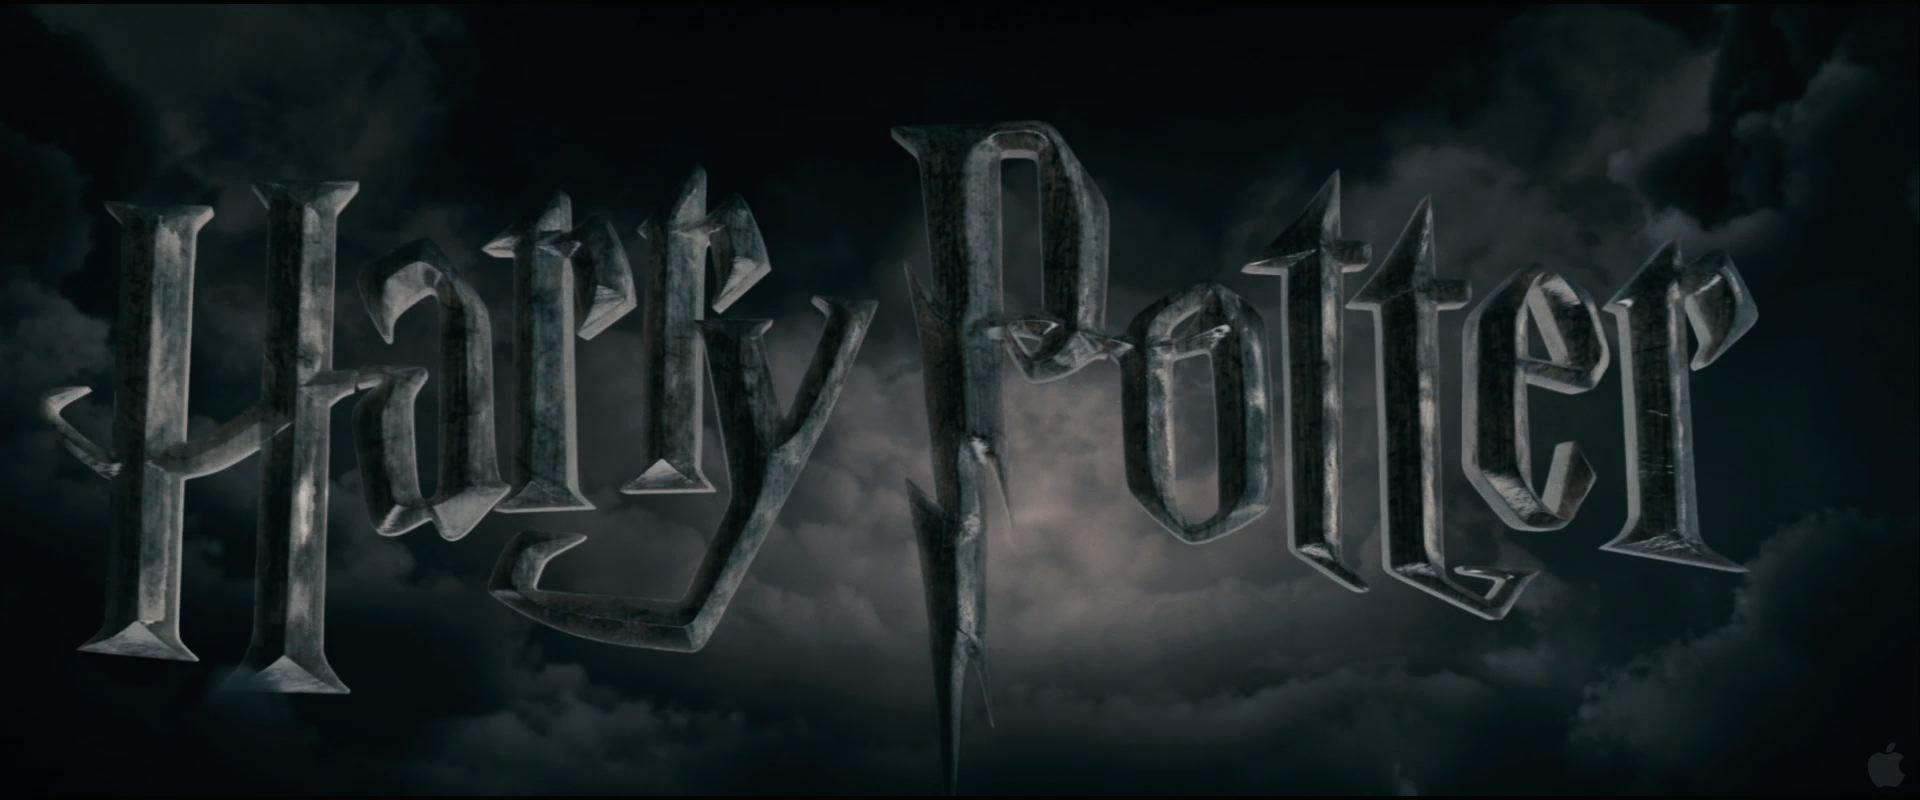 Harry Potter Logo Wallpaper HD 3